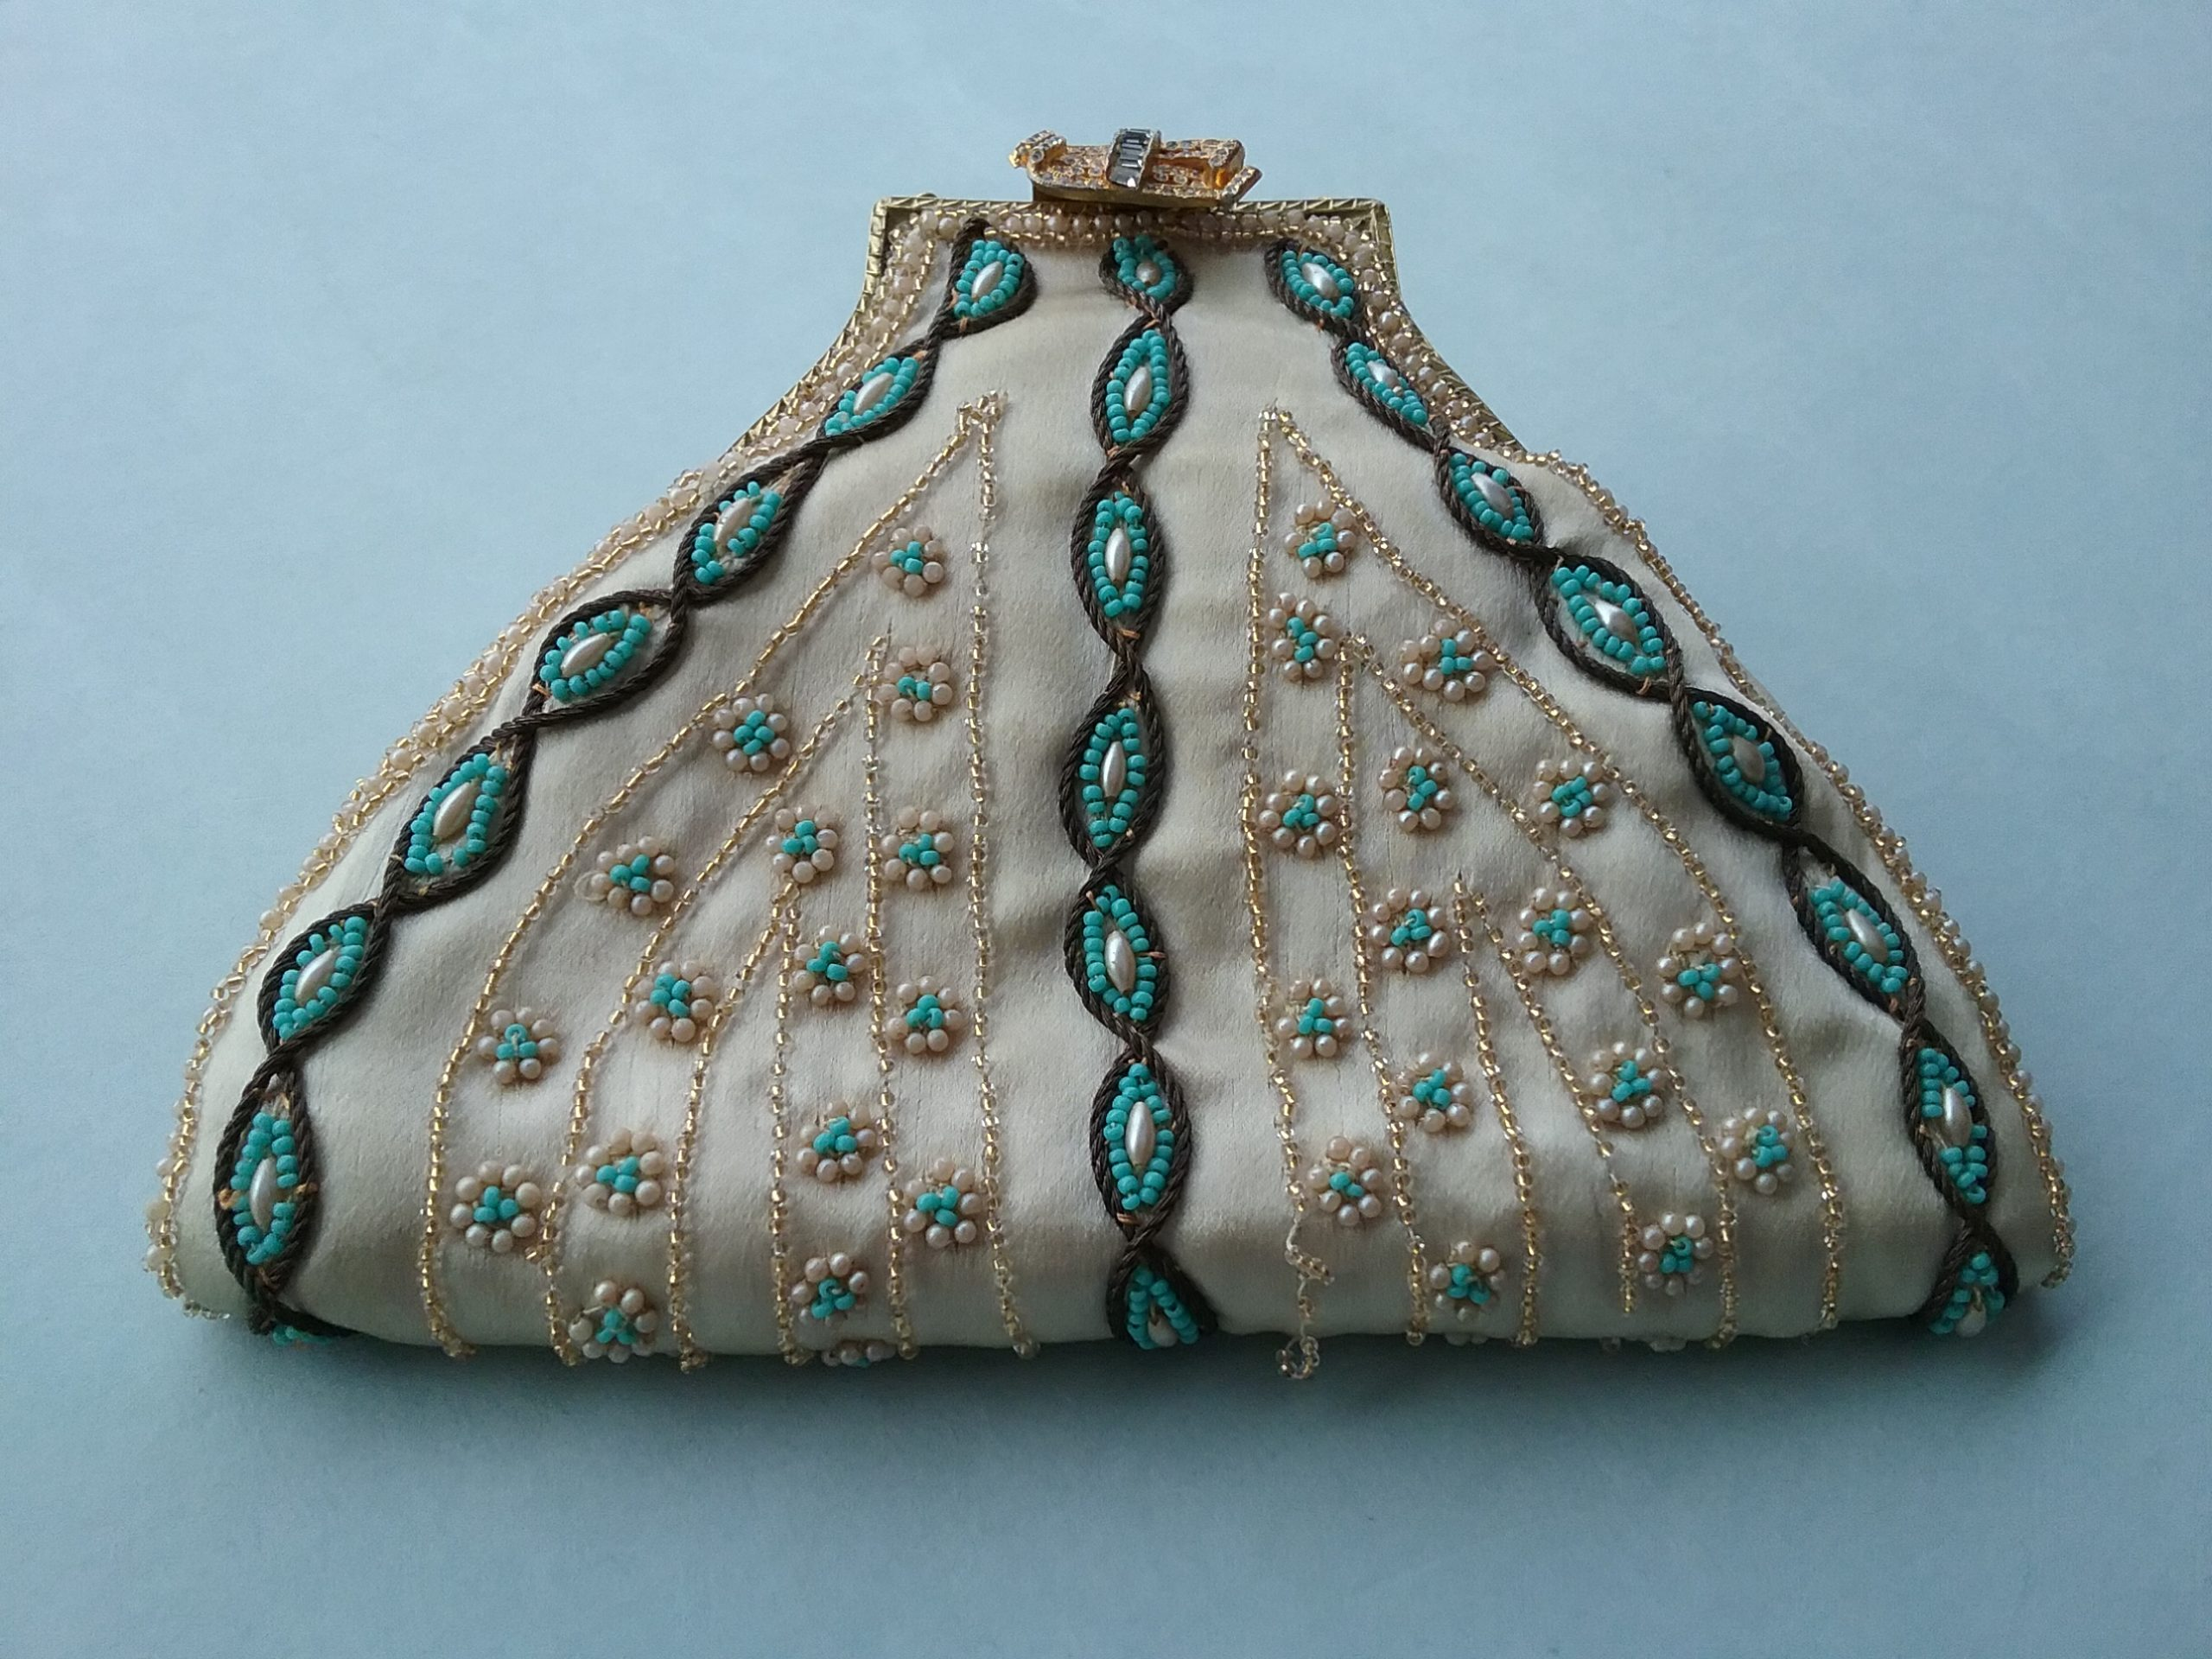 Clutch Purse: Cream-colored satin clutch purse with ­turquoise, gold, and imitation pearl beads. Donated by Mrs. Vernon Johnson. MCHS collections, #1973.20.1a.